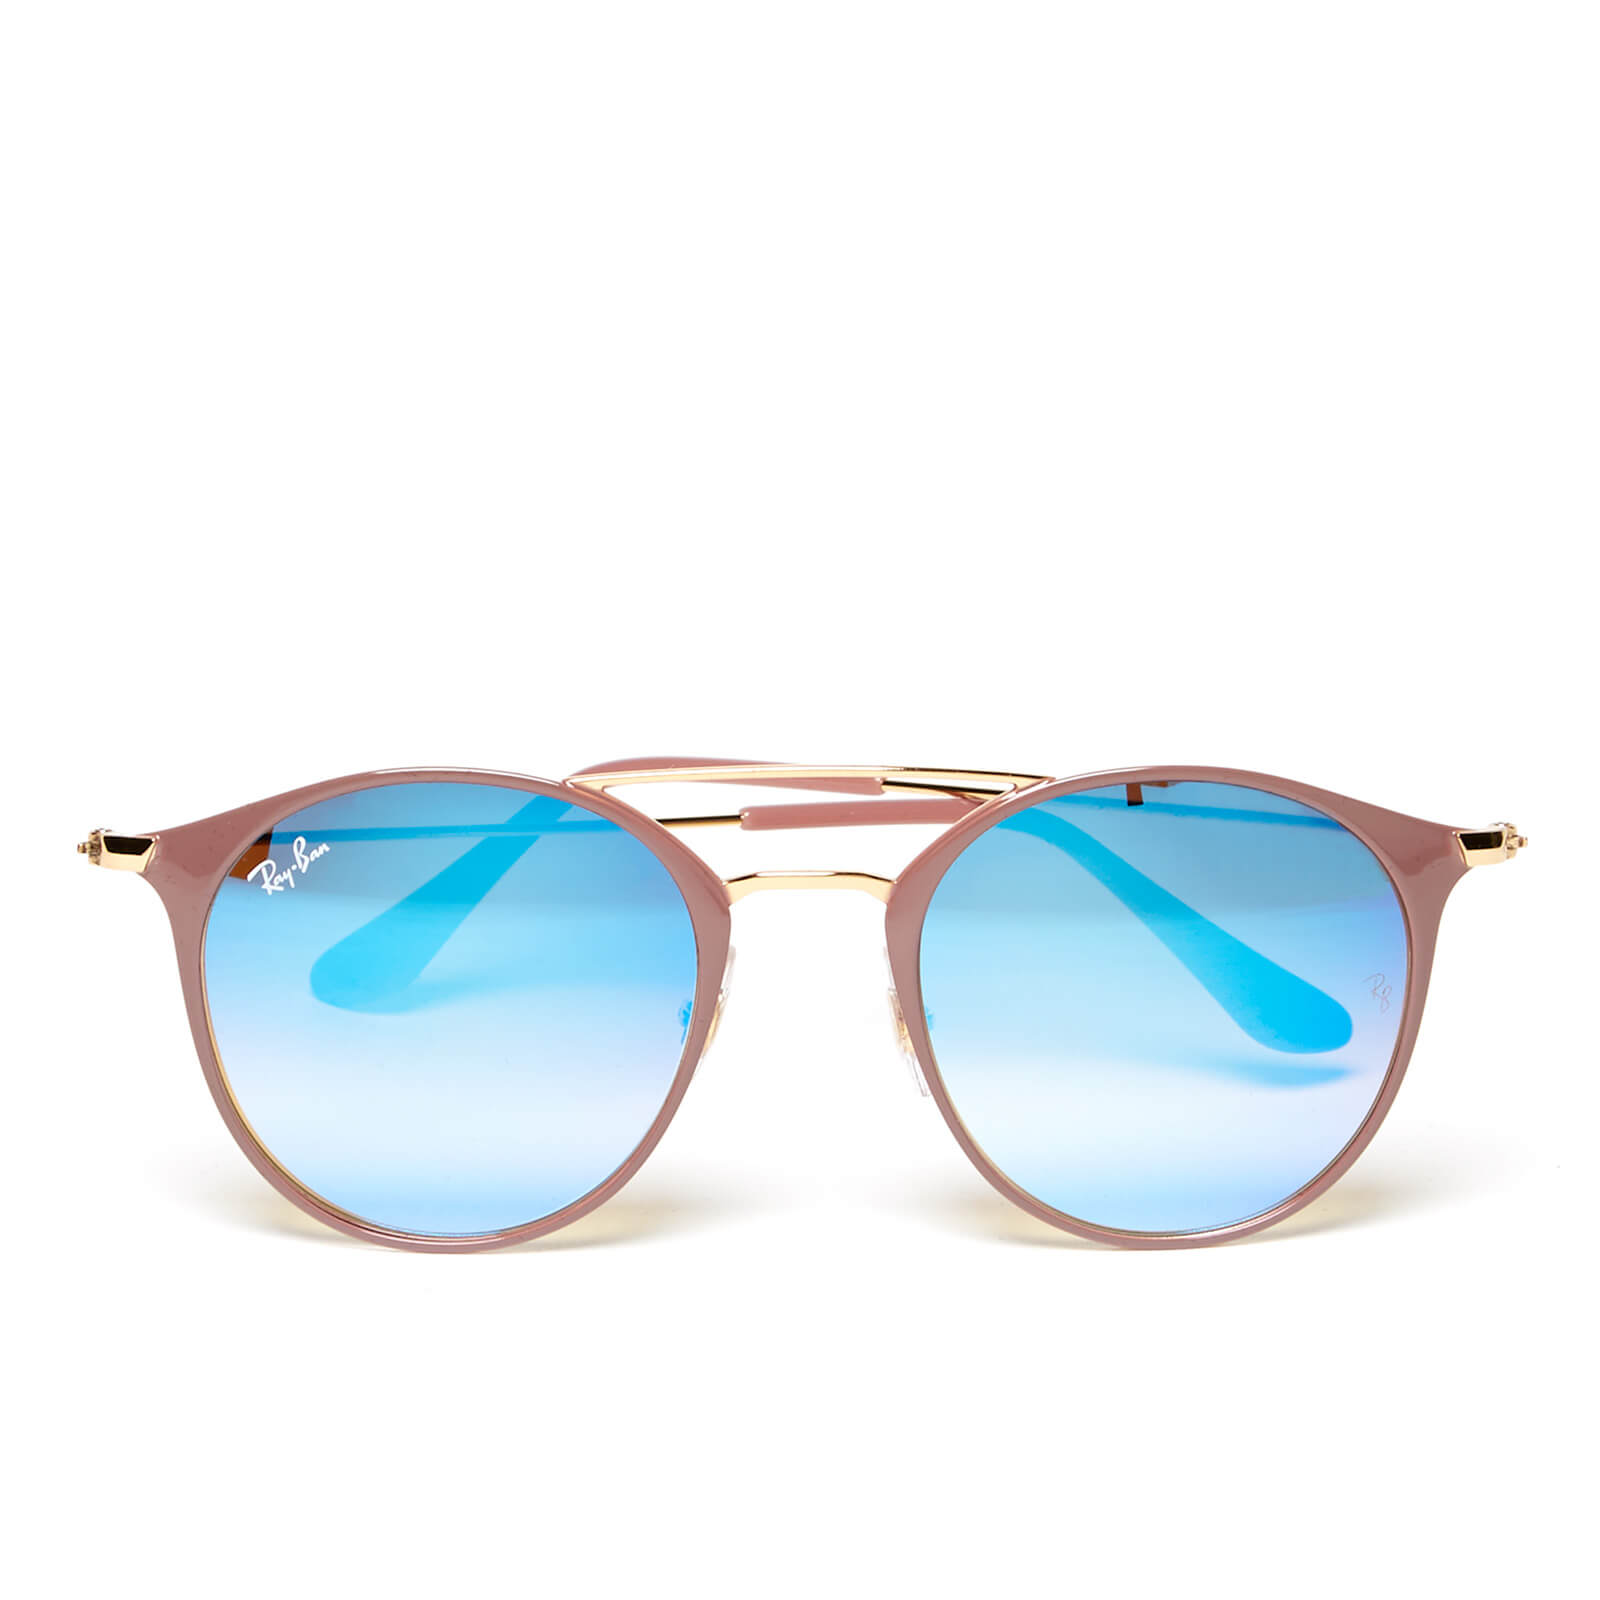 cc8f764ed45 Ray-Ban Round Metal Rose Frame Sunglasses - Gold Top Beige Blue Flash -  Free UK Delivery over £50